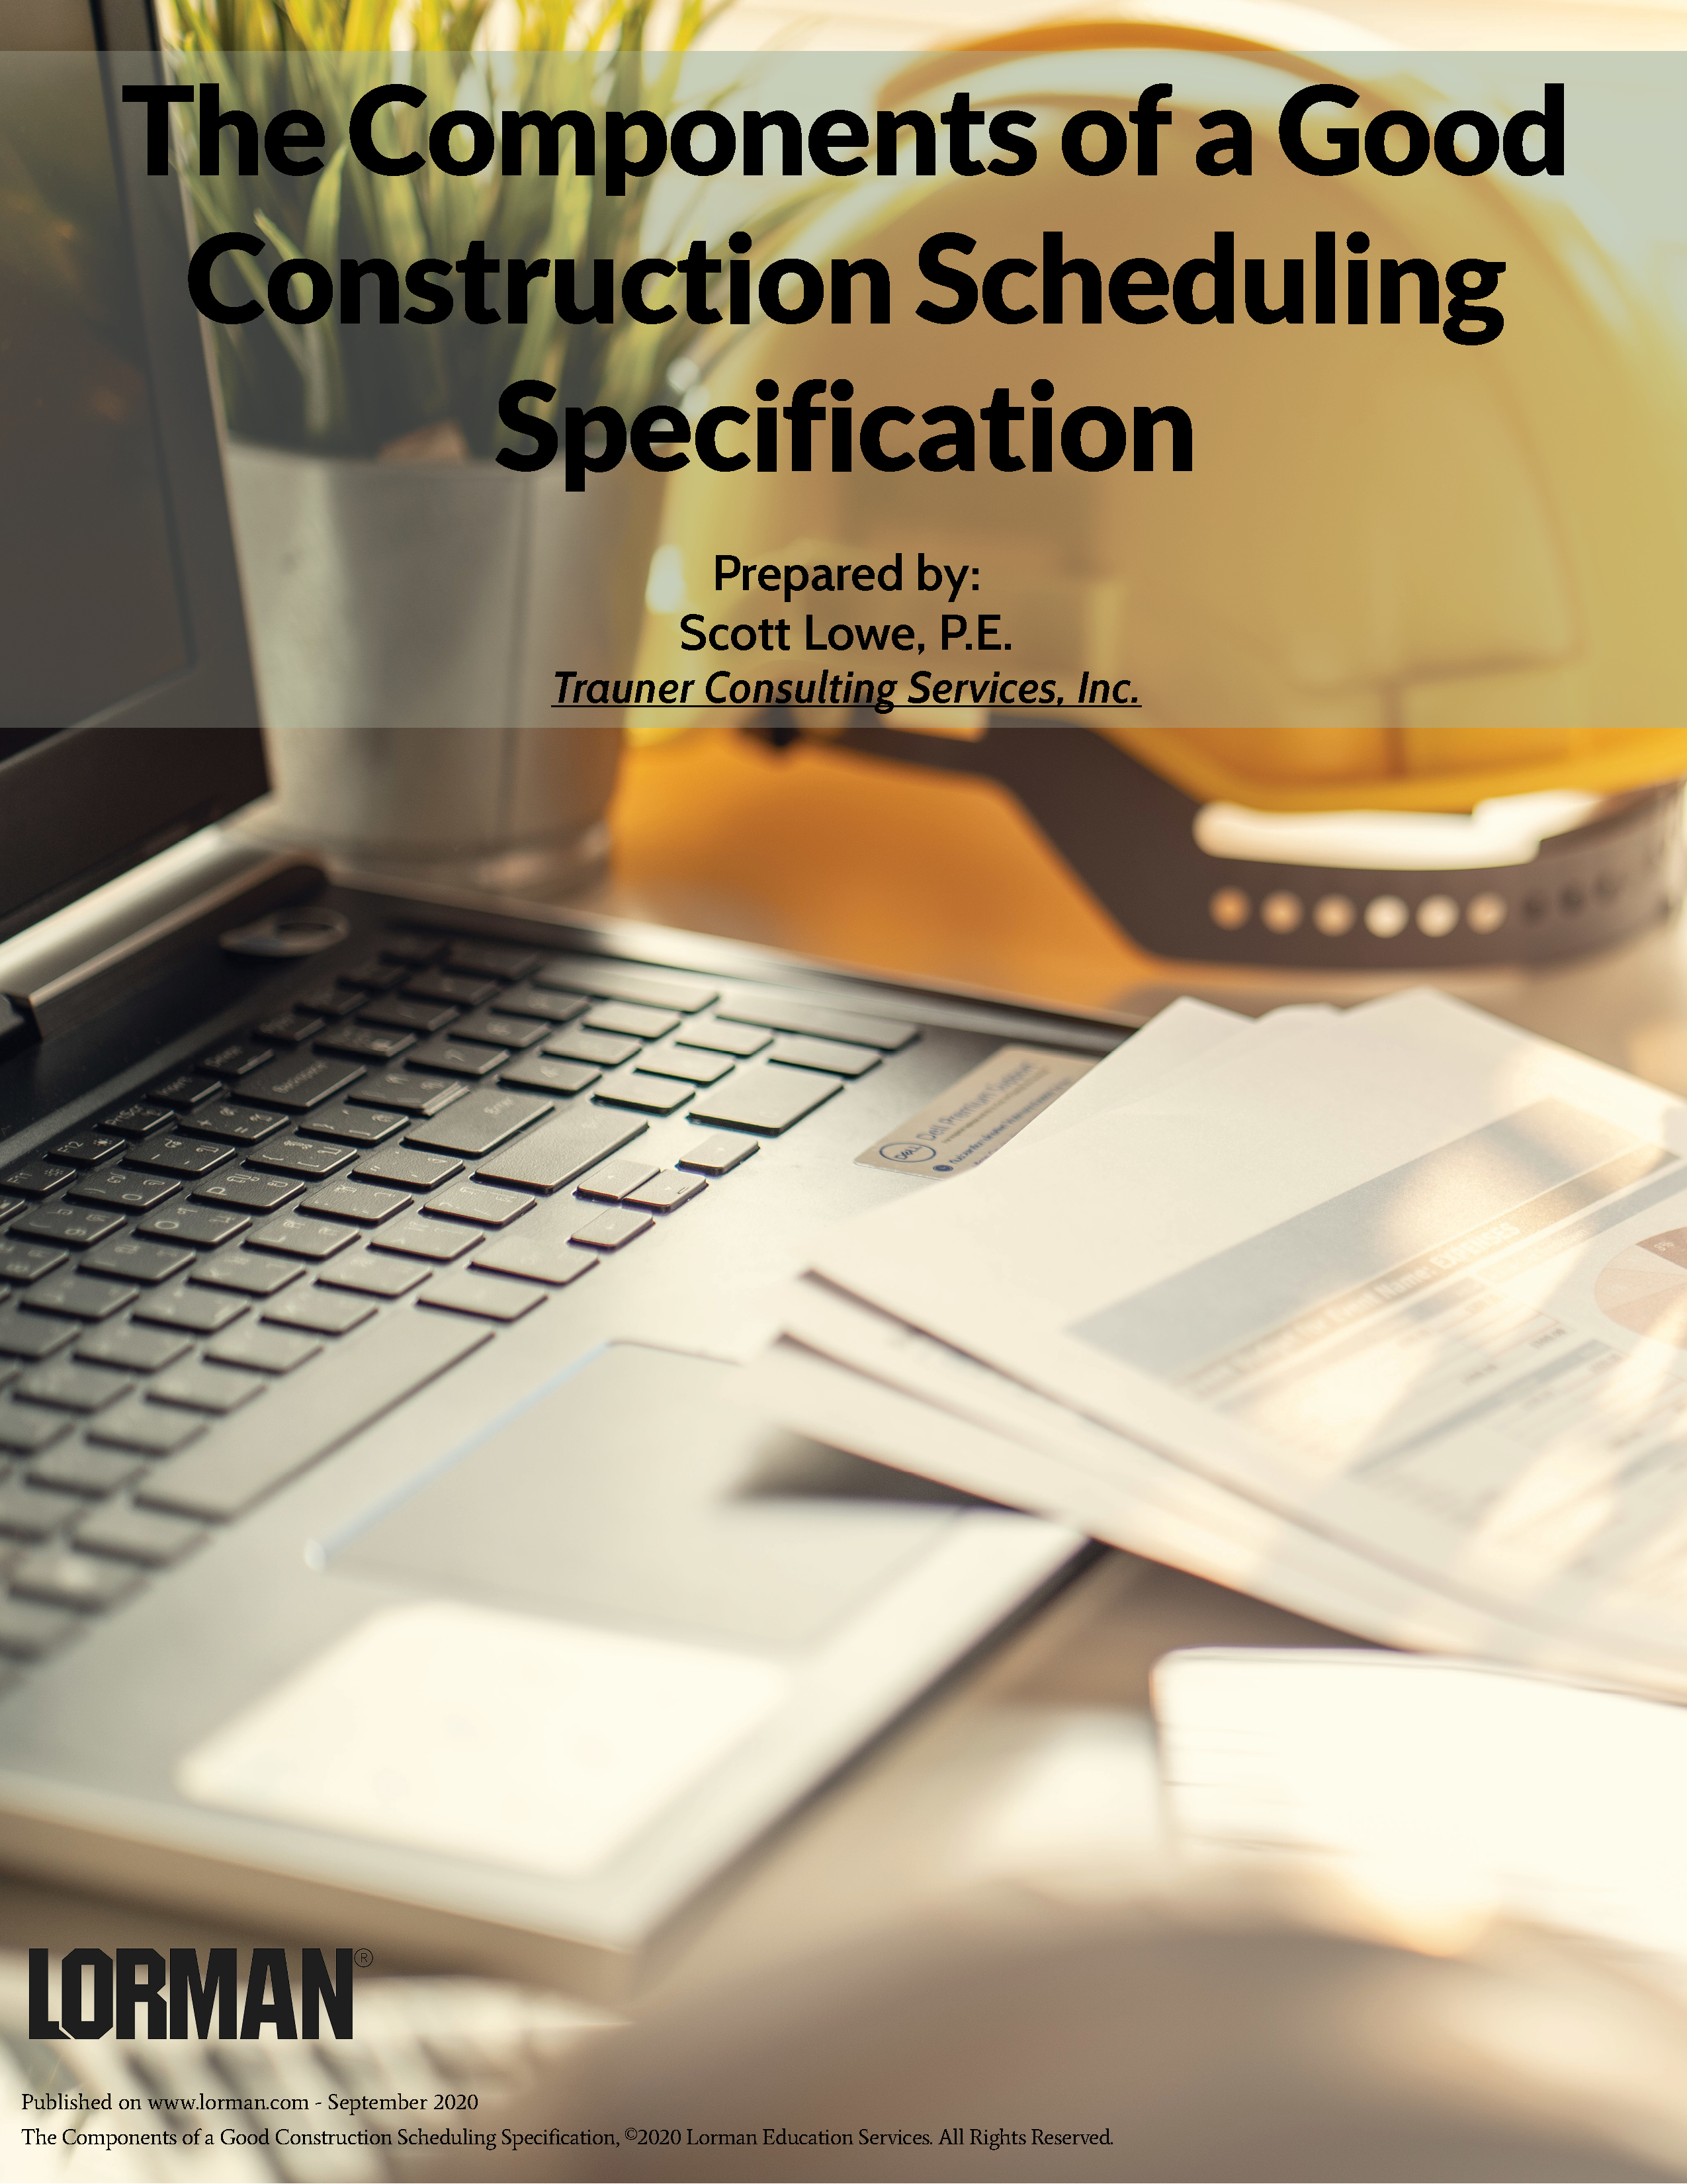 The Components of a Good Construction Scheduling Specification